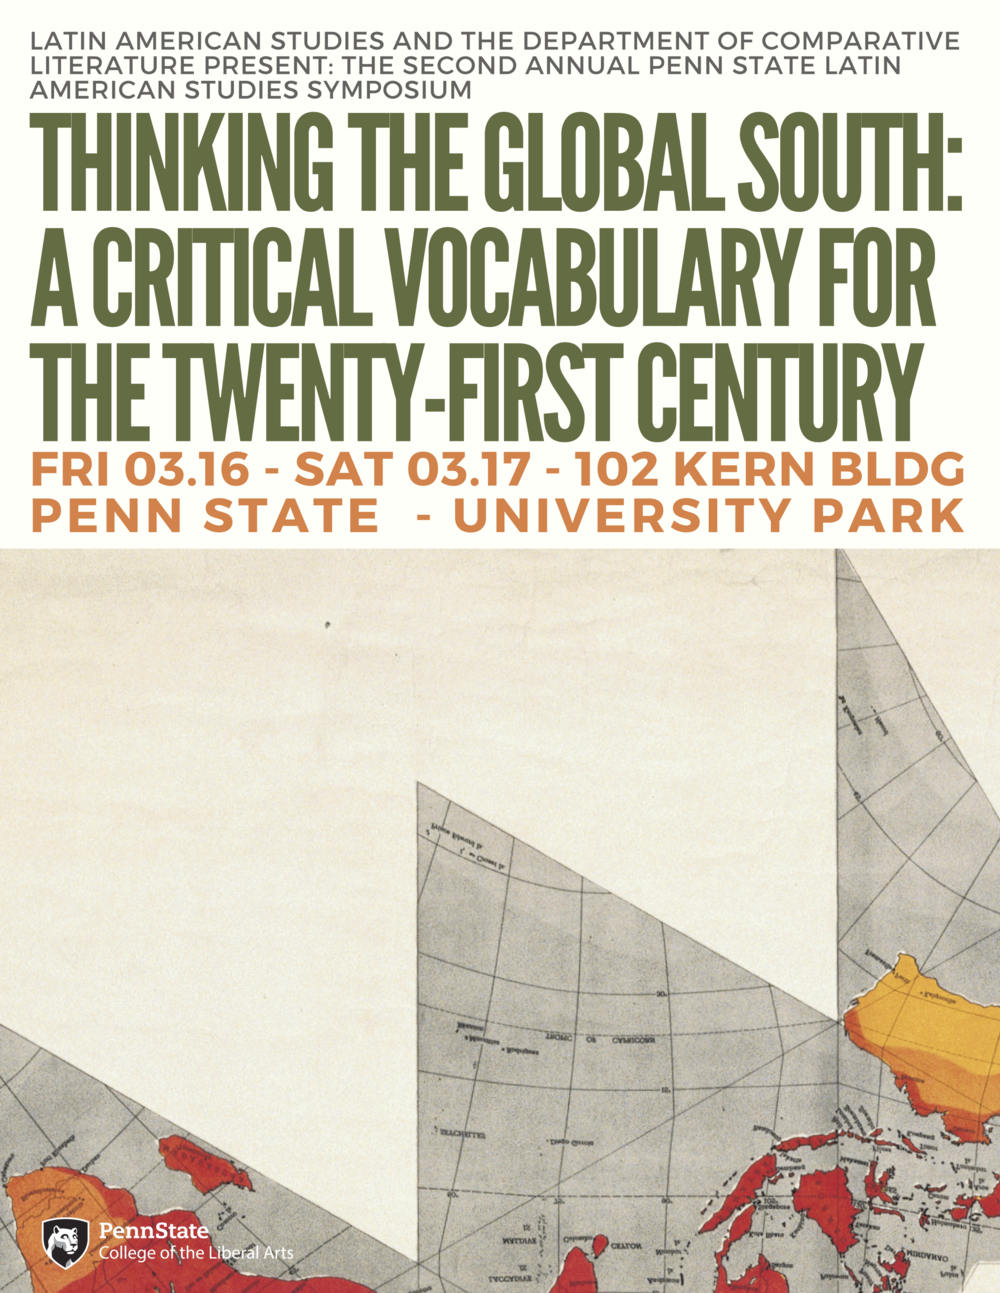 Thinking the Global South - Conference Program-1 (dragged) copy.png